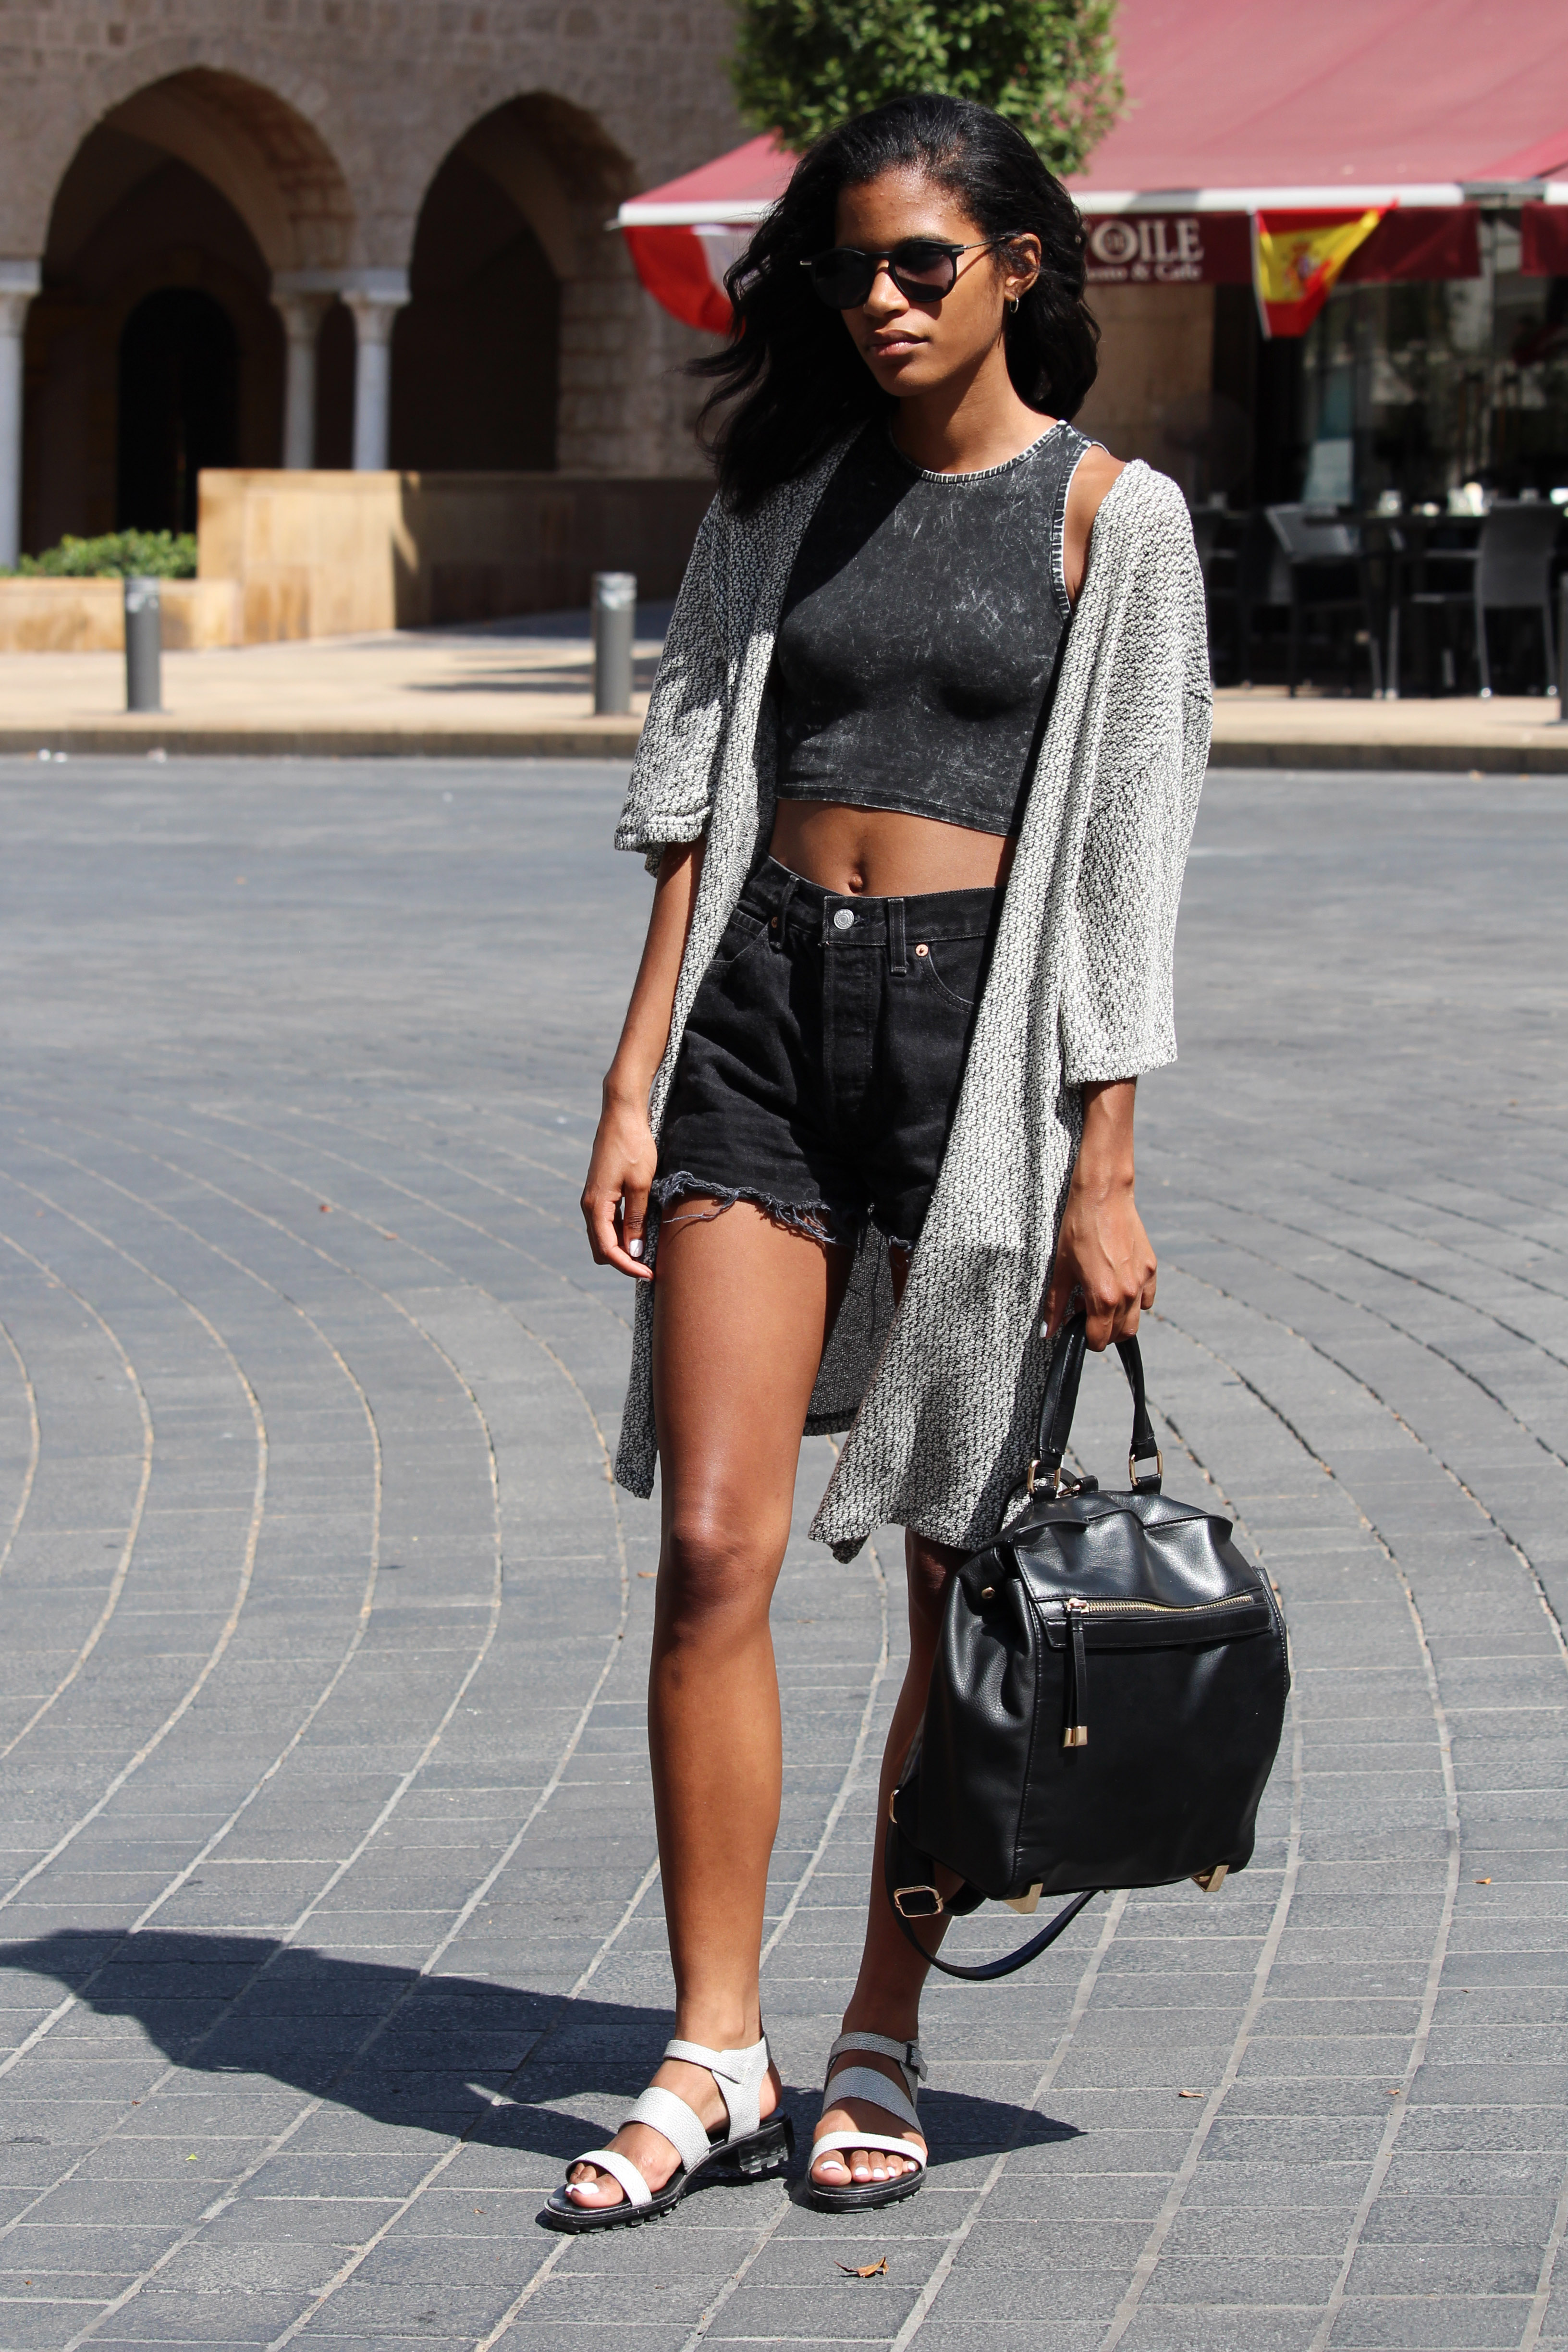 White Sandals We Love Street Style